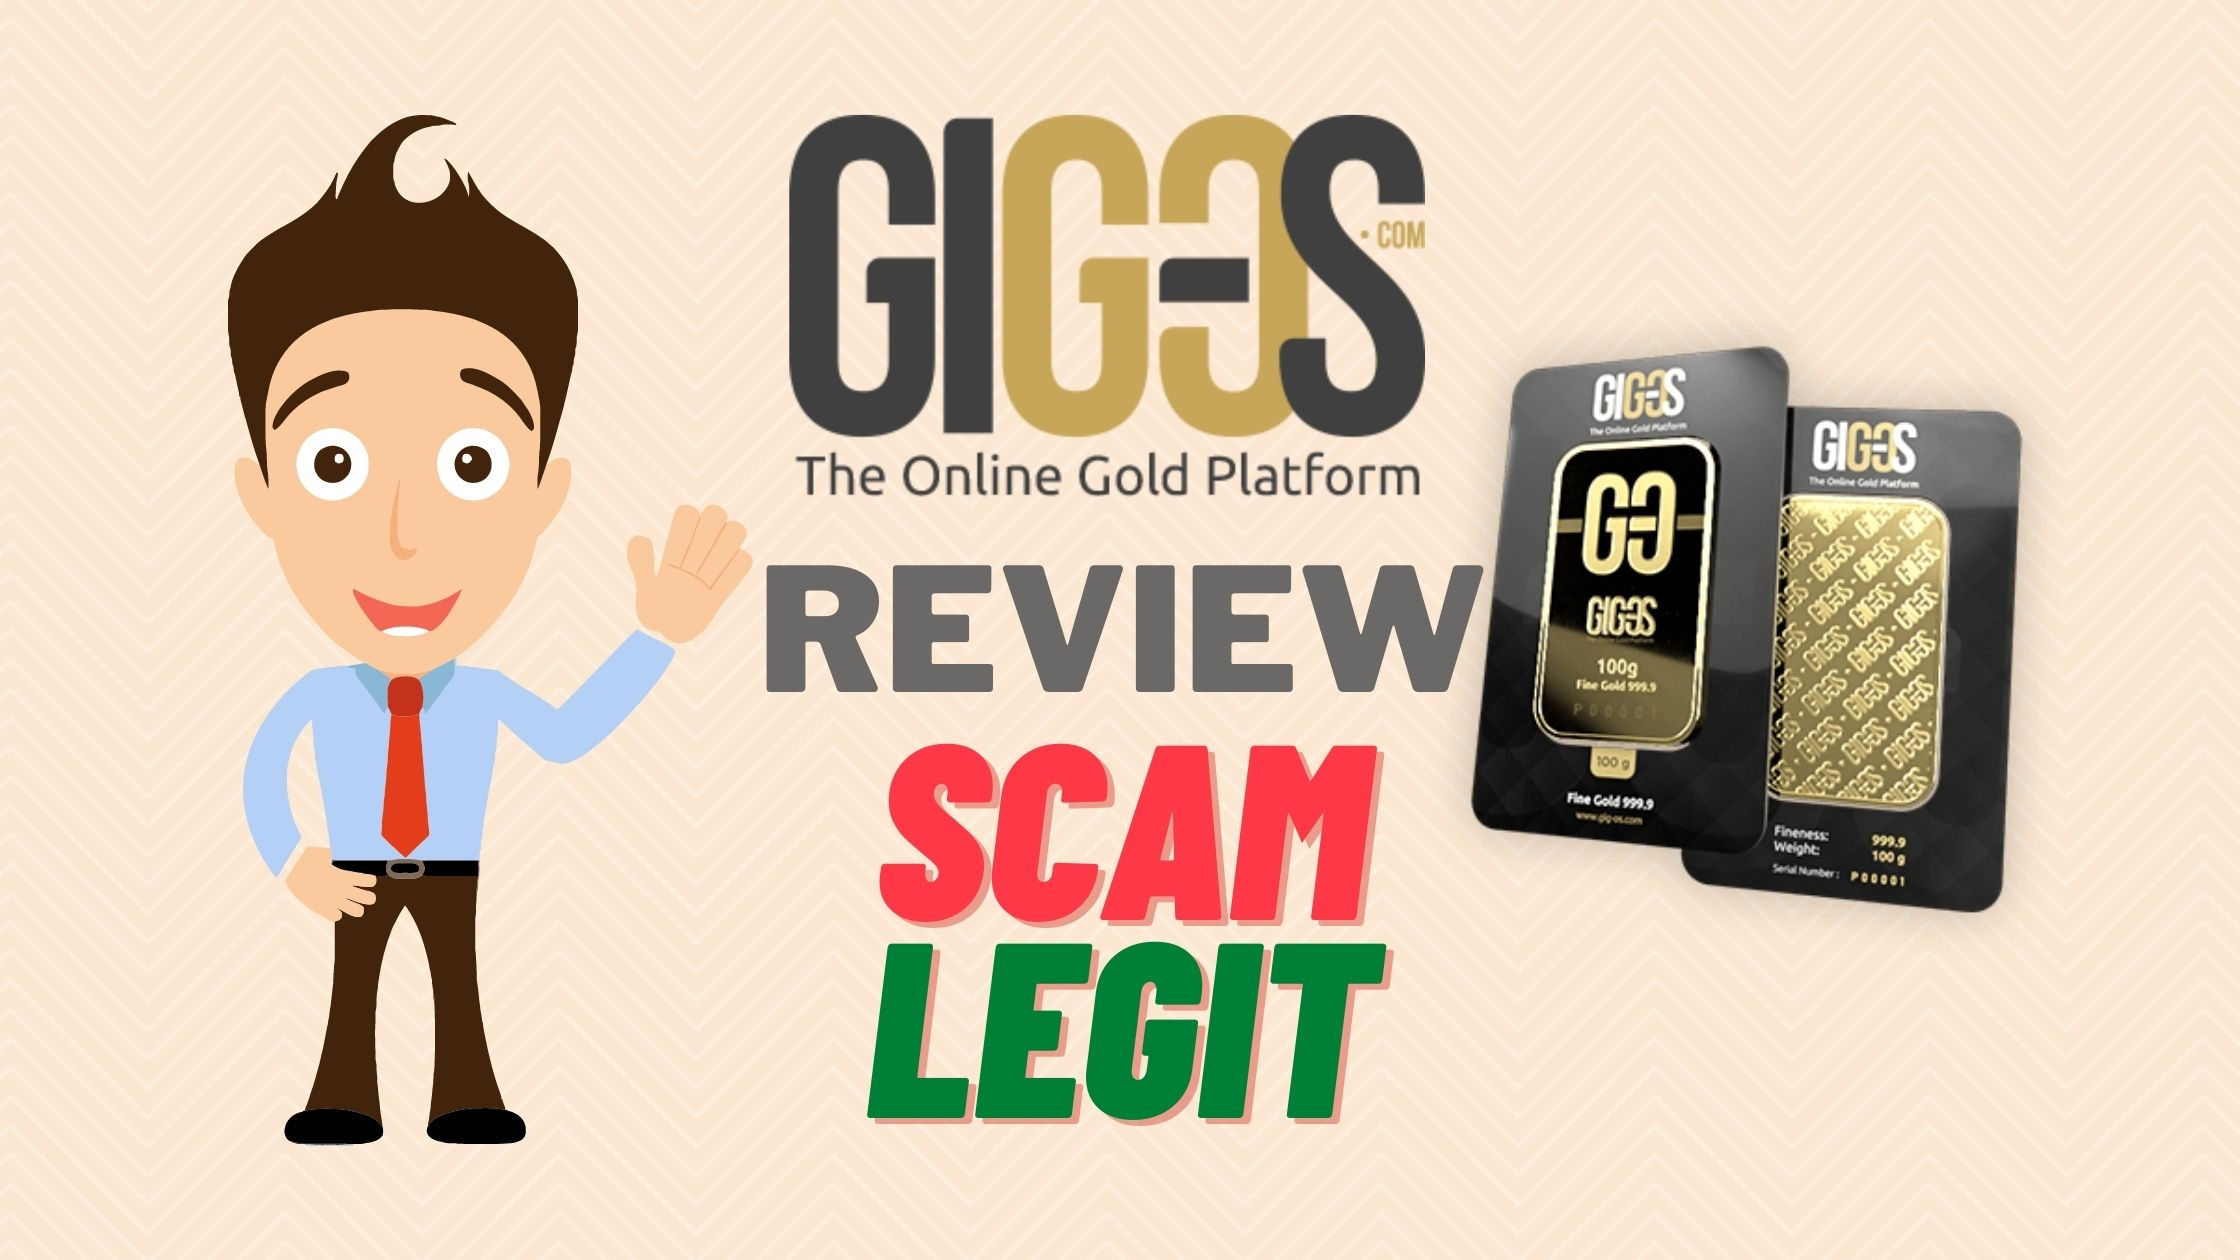 GIG-OS Review 2020: Scam or Legit?